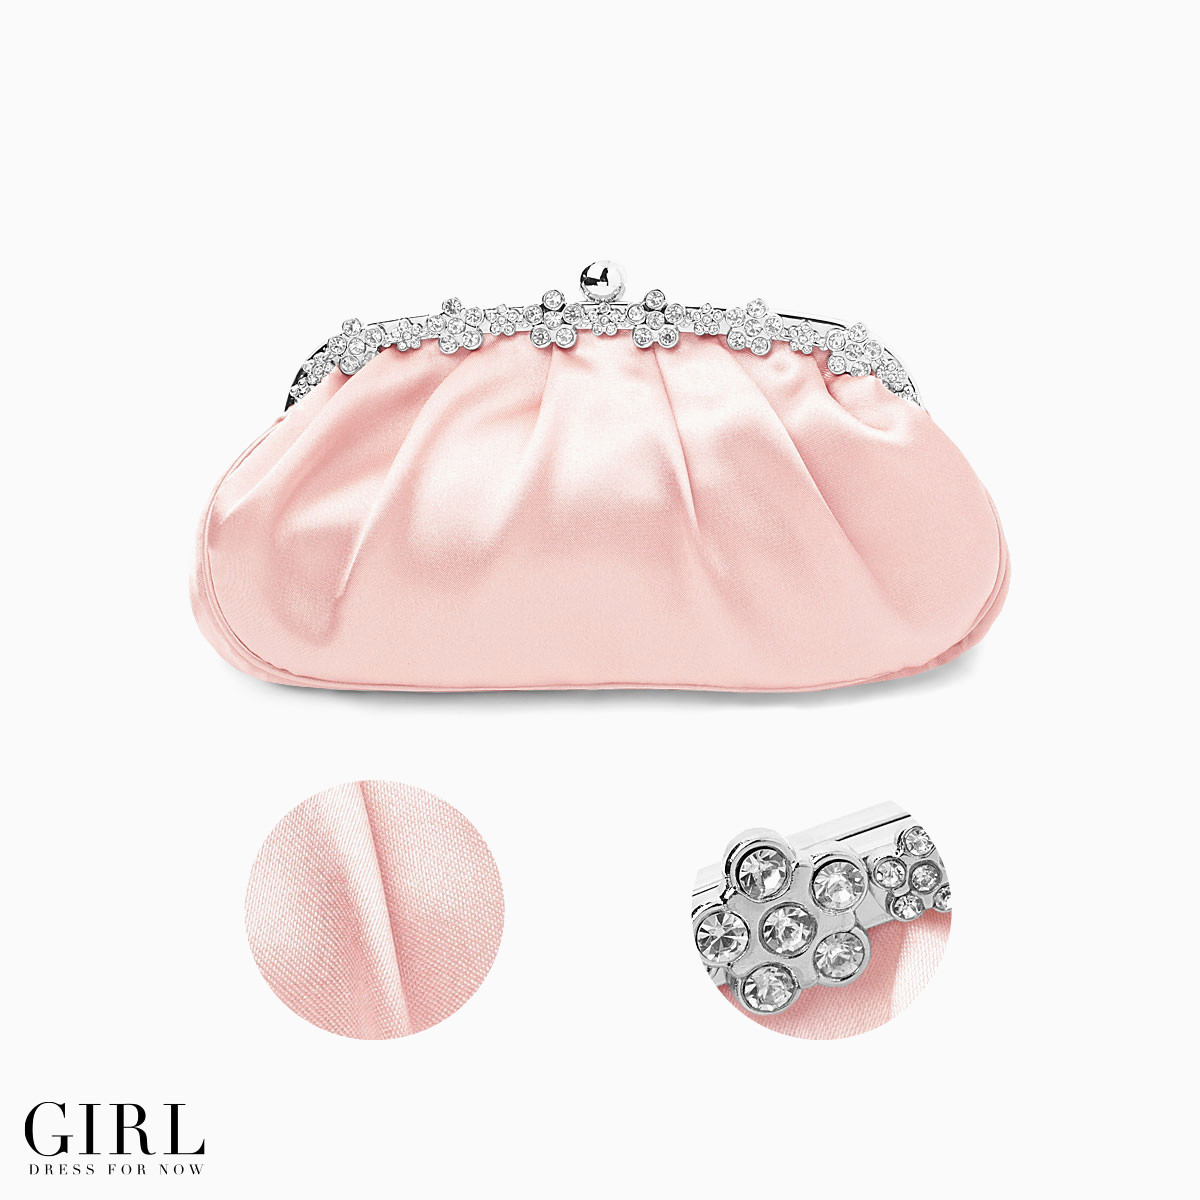 7 Wedding bag ★ new colors now available colors soft cute classy silhouette florets bijoux ♪ coin purse party bag party wedding parties party party bag back parties back BAG clutch back store bag sb ro